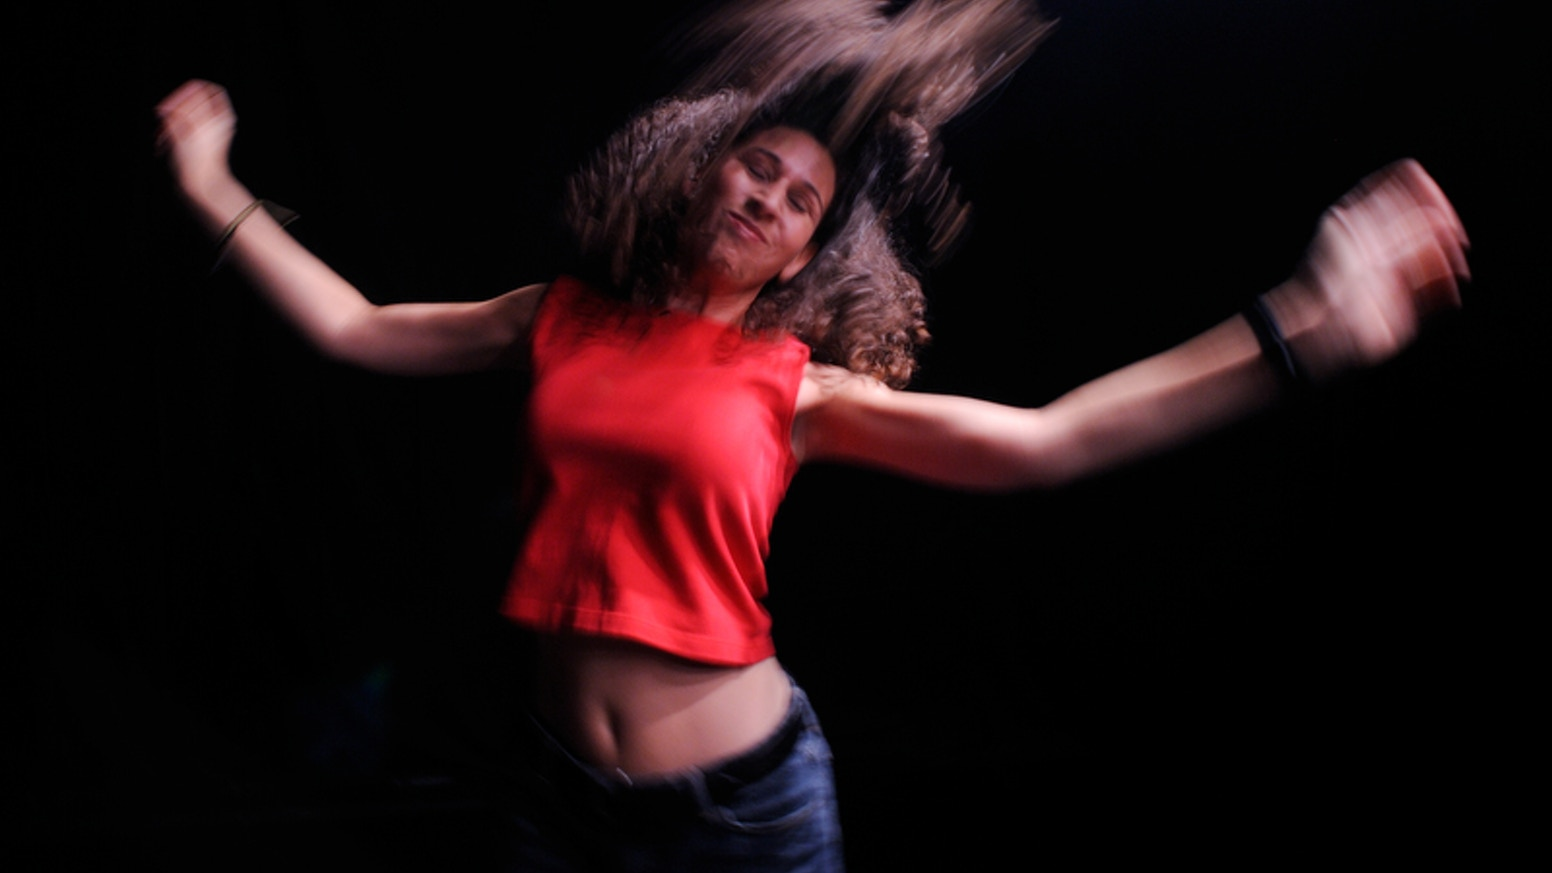 Special community dance photo sessions where all are welcome. Any body. Any style. Any age. awesome!